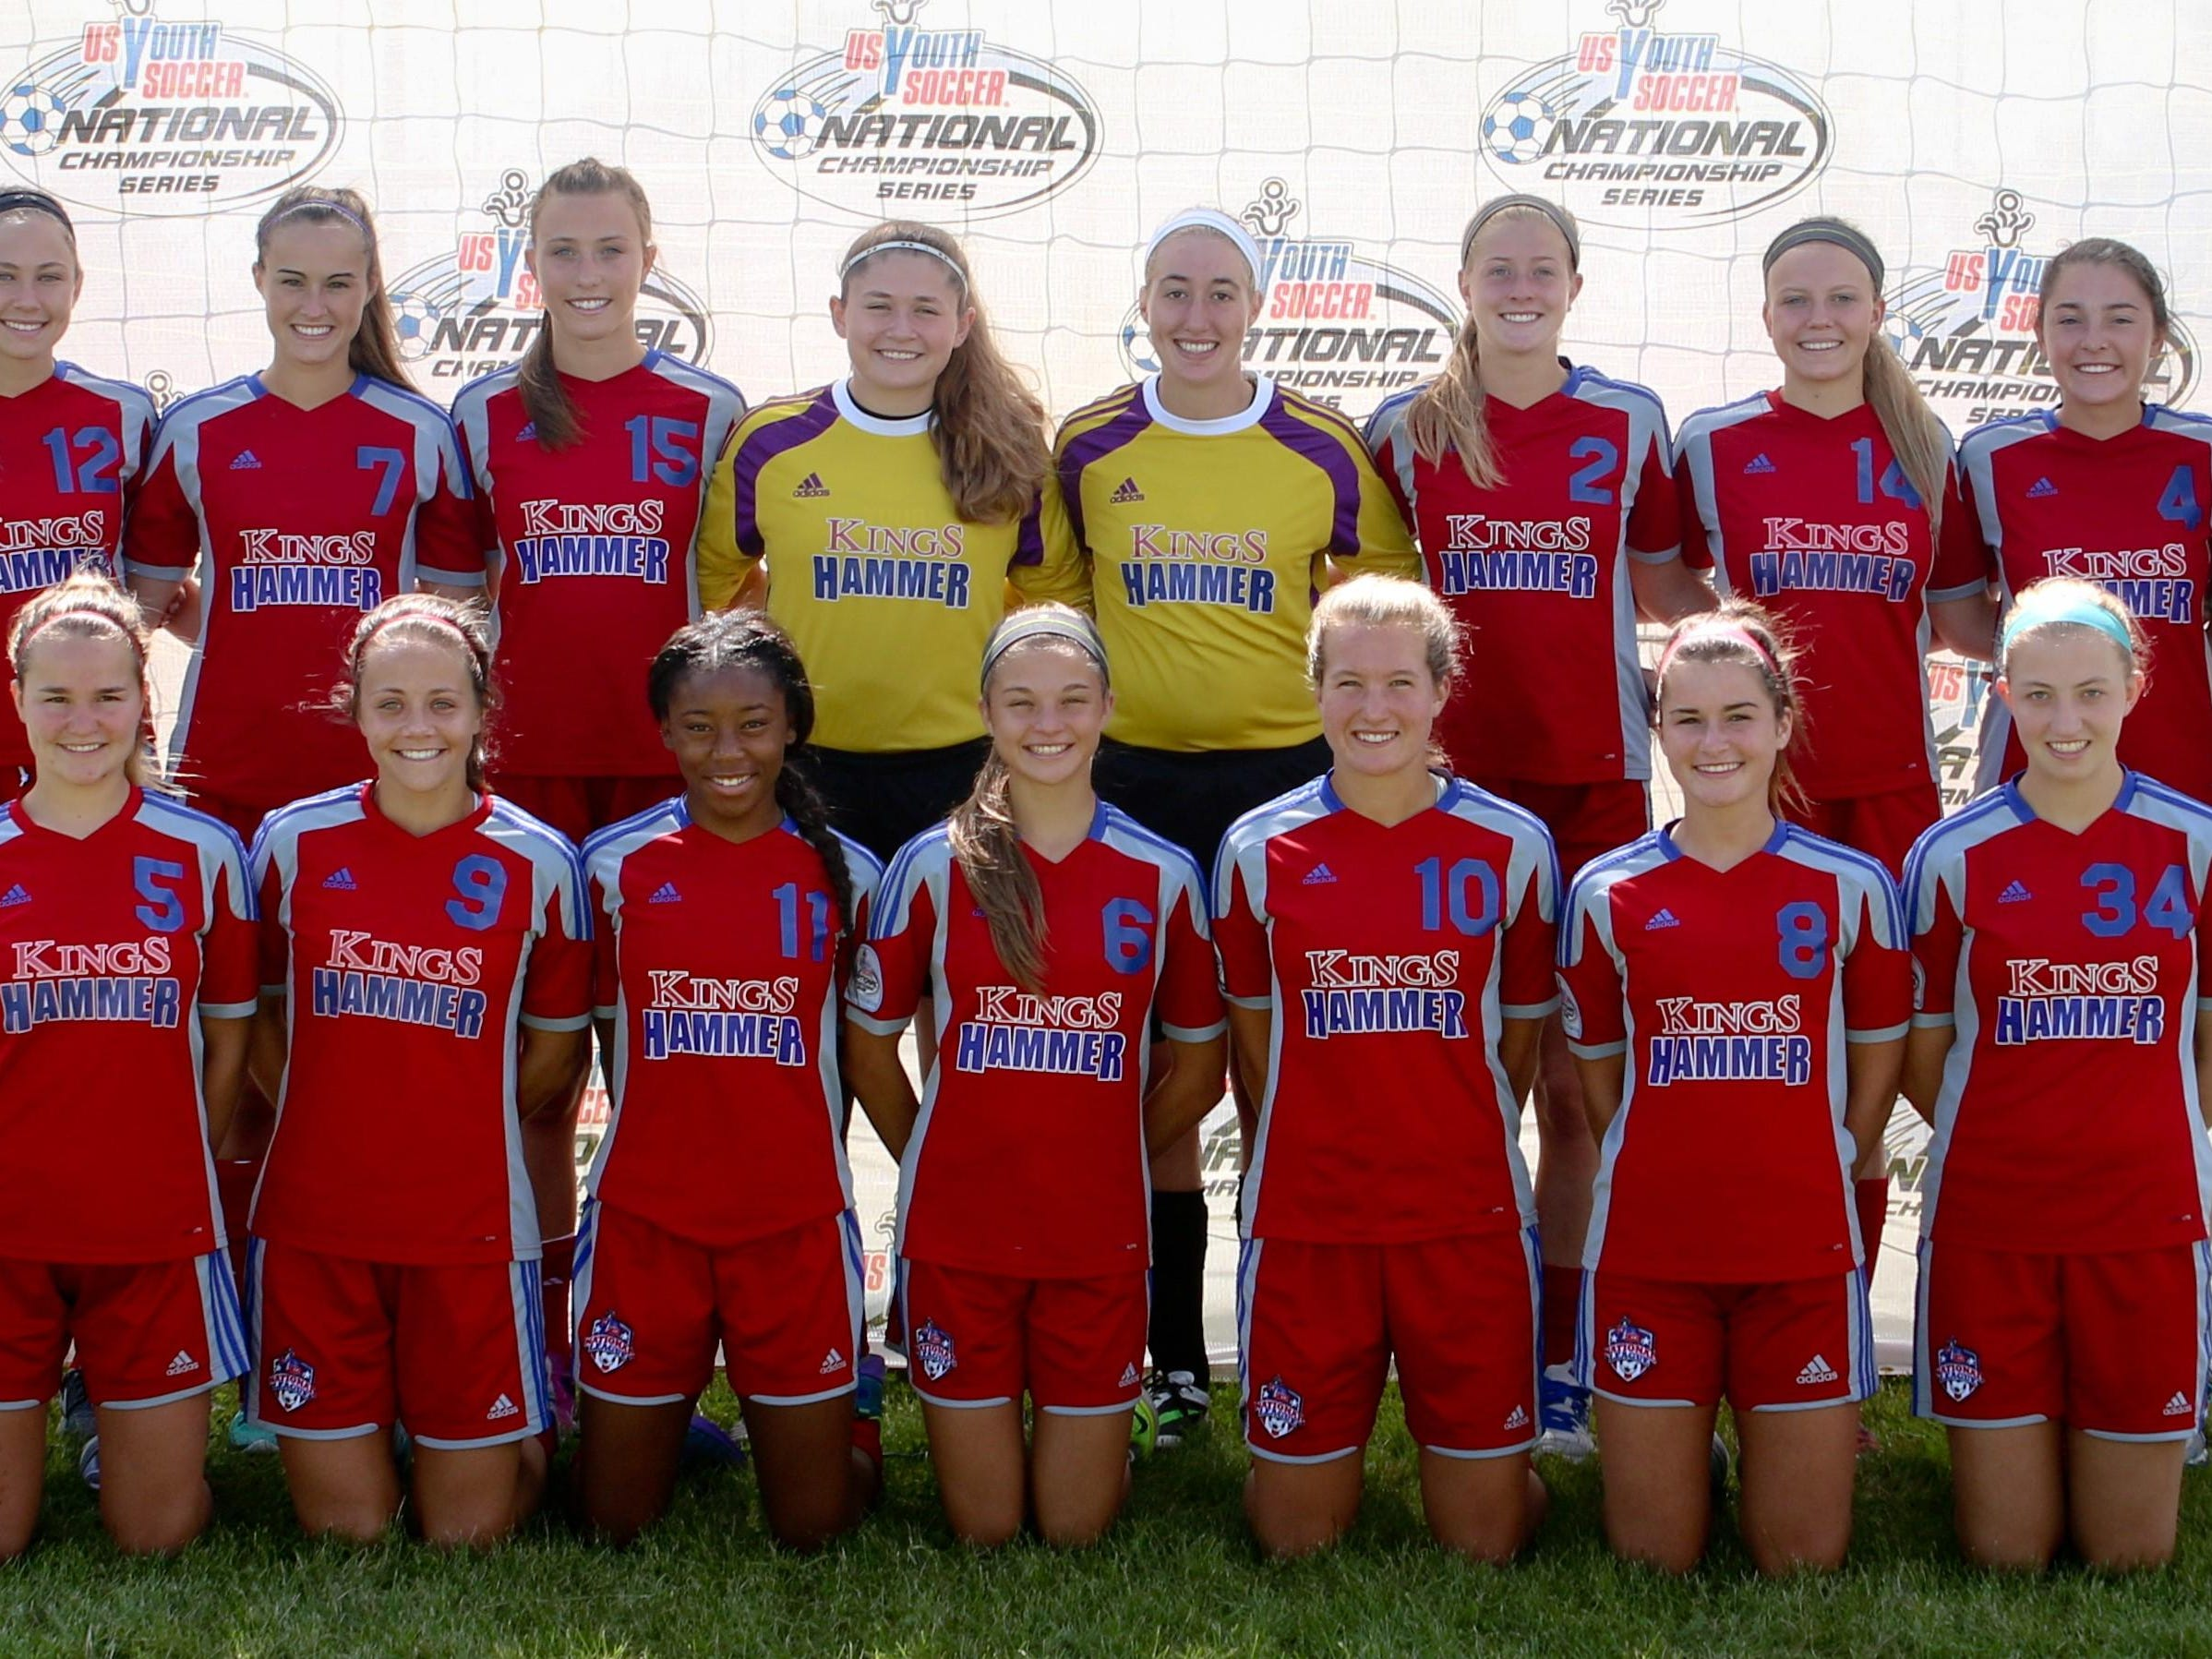 Kings Hammer Academy's U17 girls red team qualified to nationals.